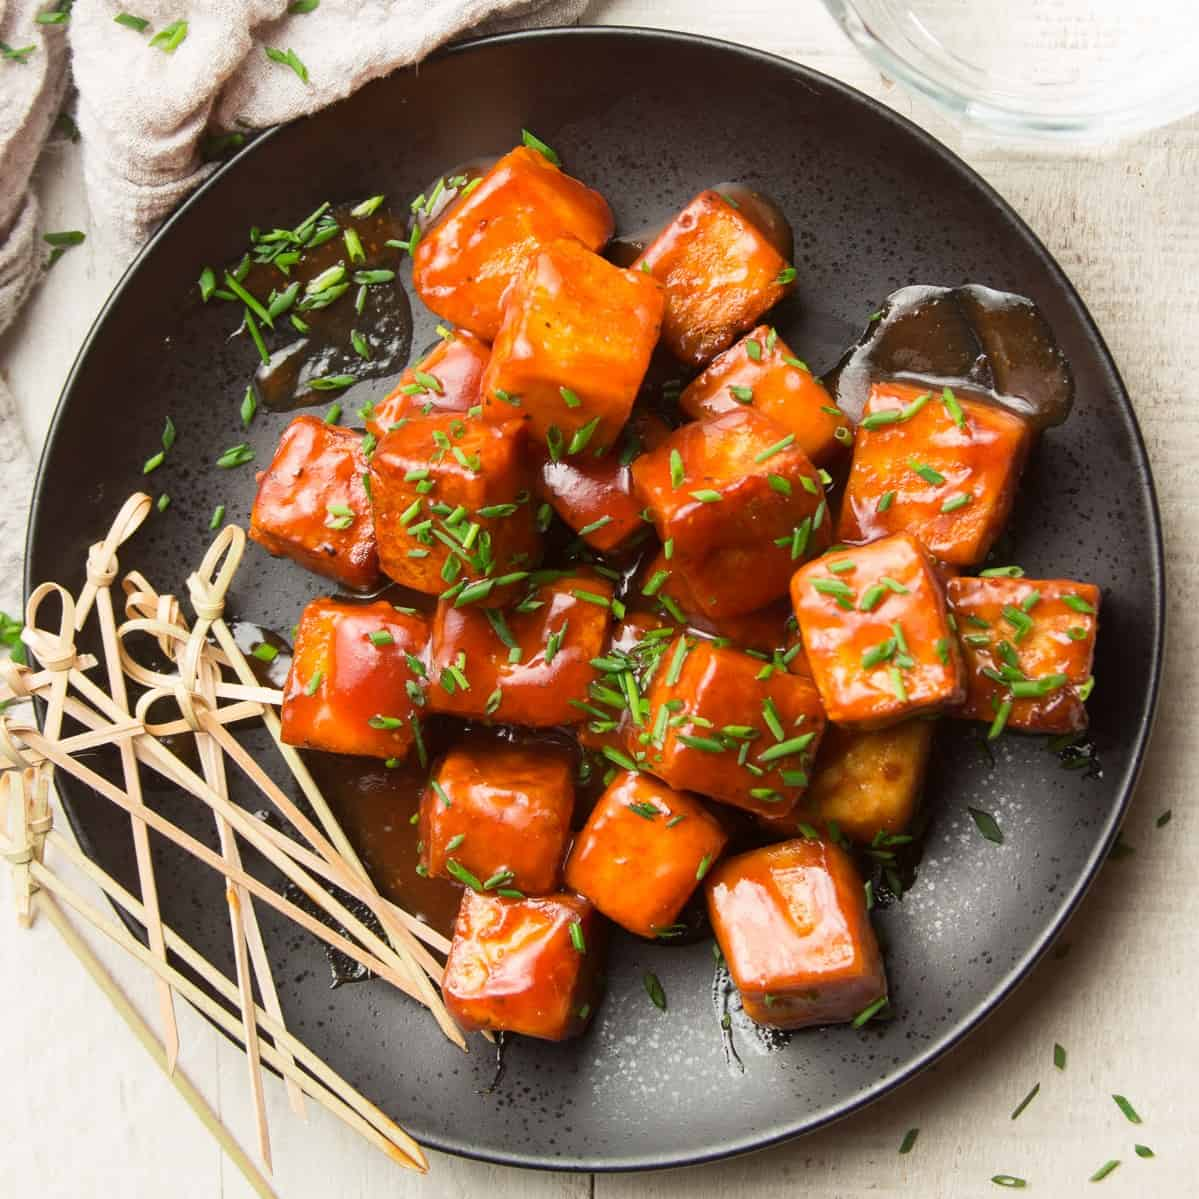 Plate of BBQ Tofu with Skewers on the Side